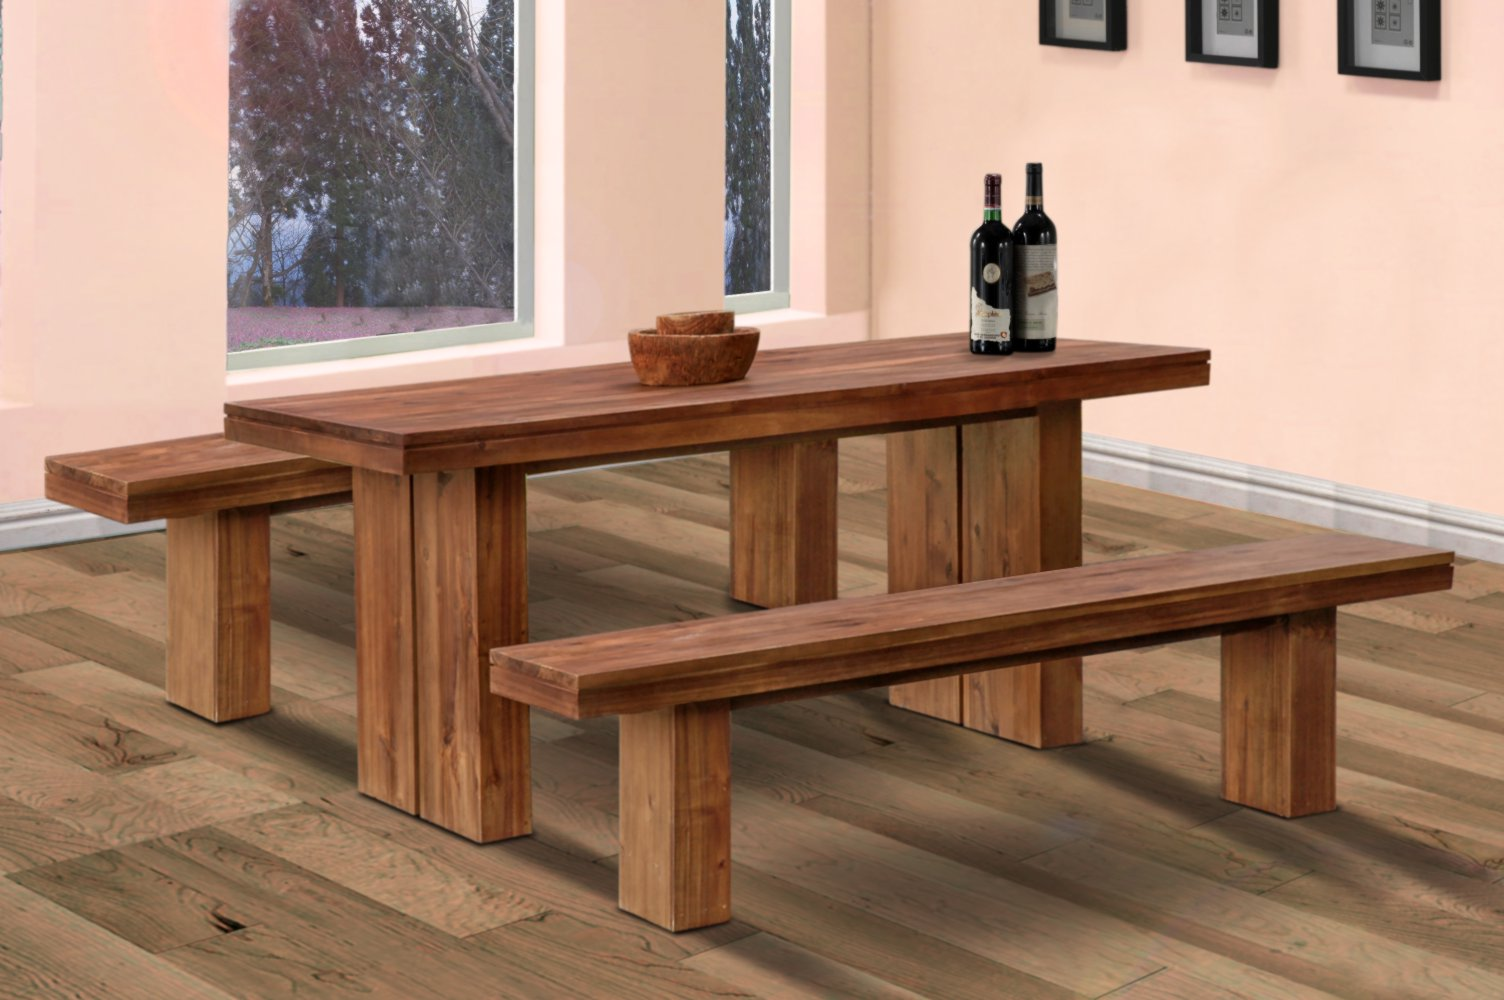 Danielle dining table and bench java valentti Breakfast table with bench